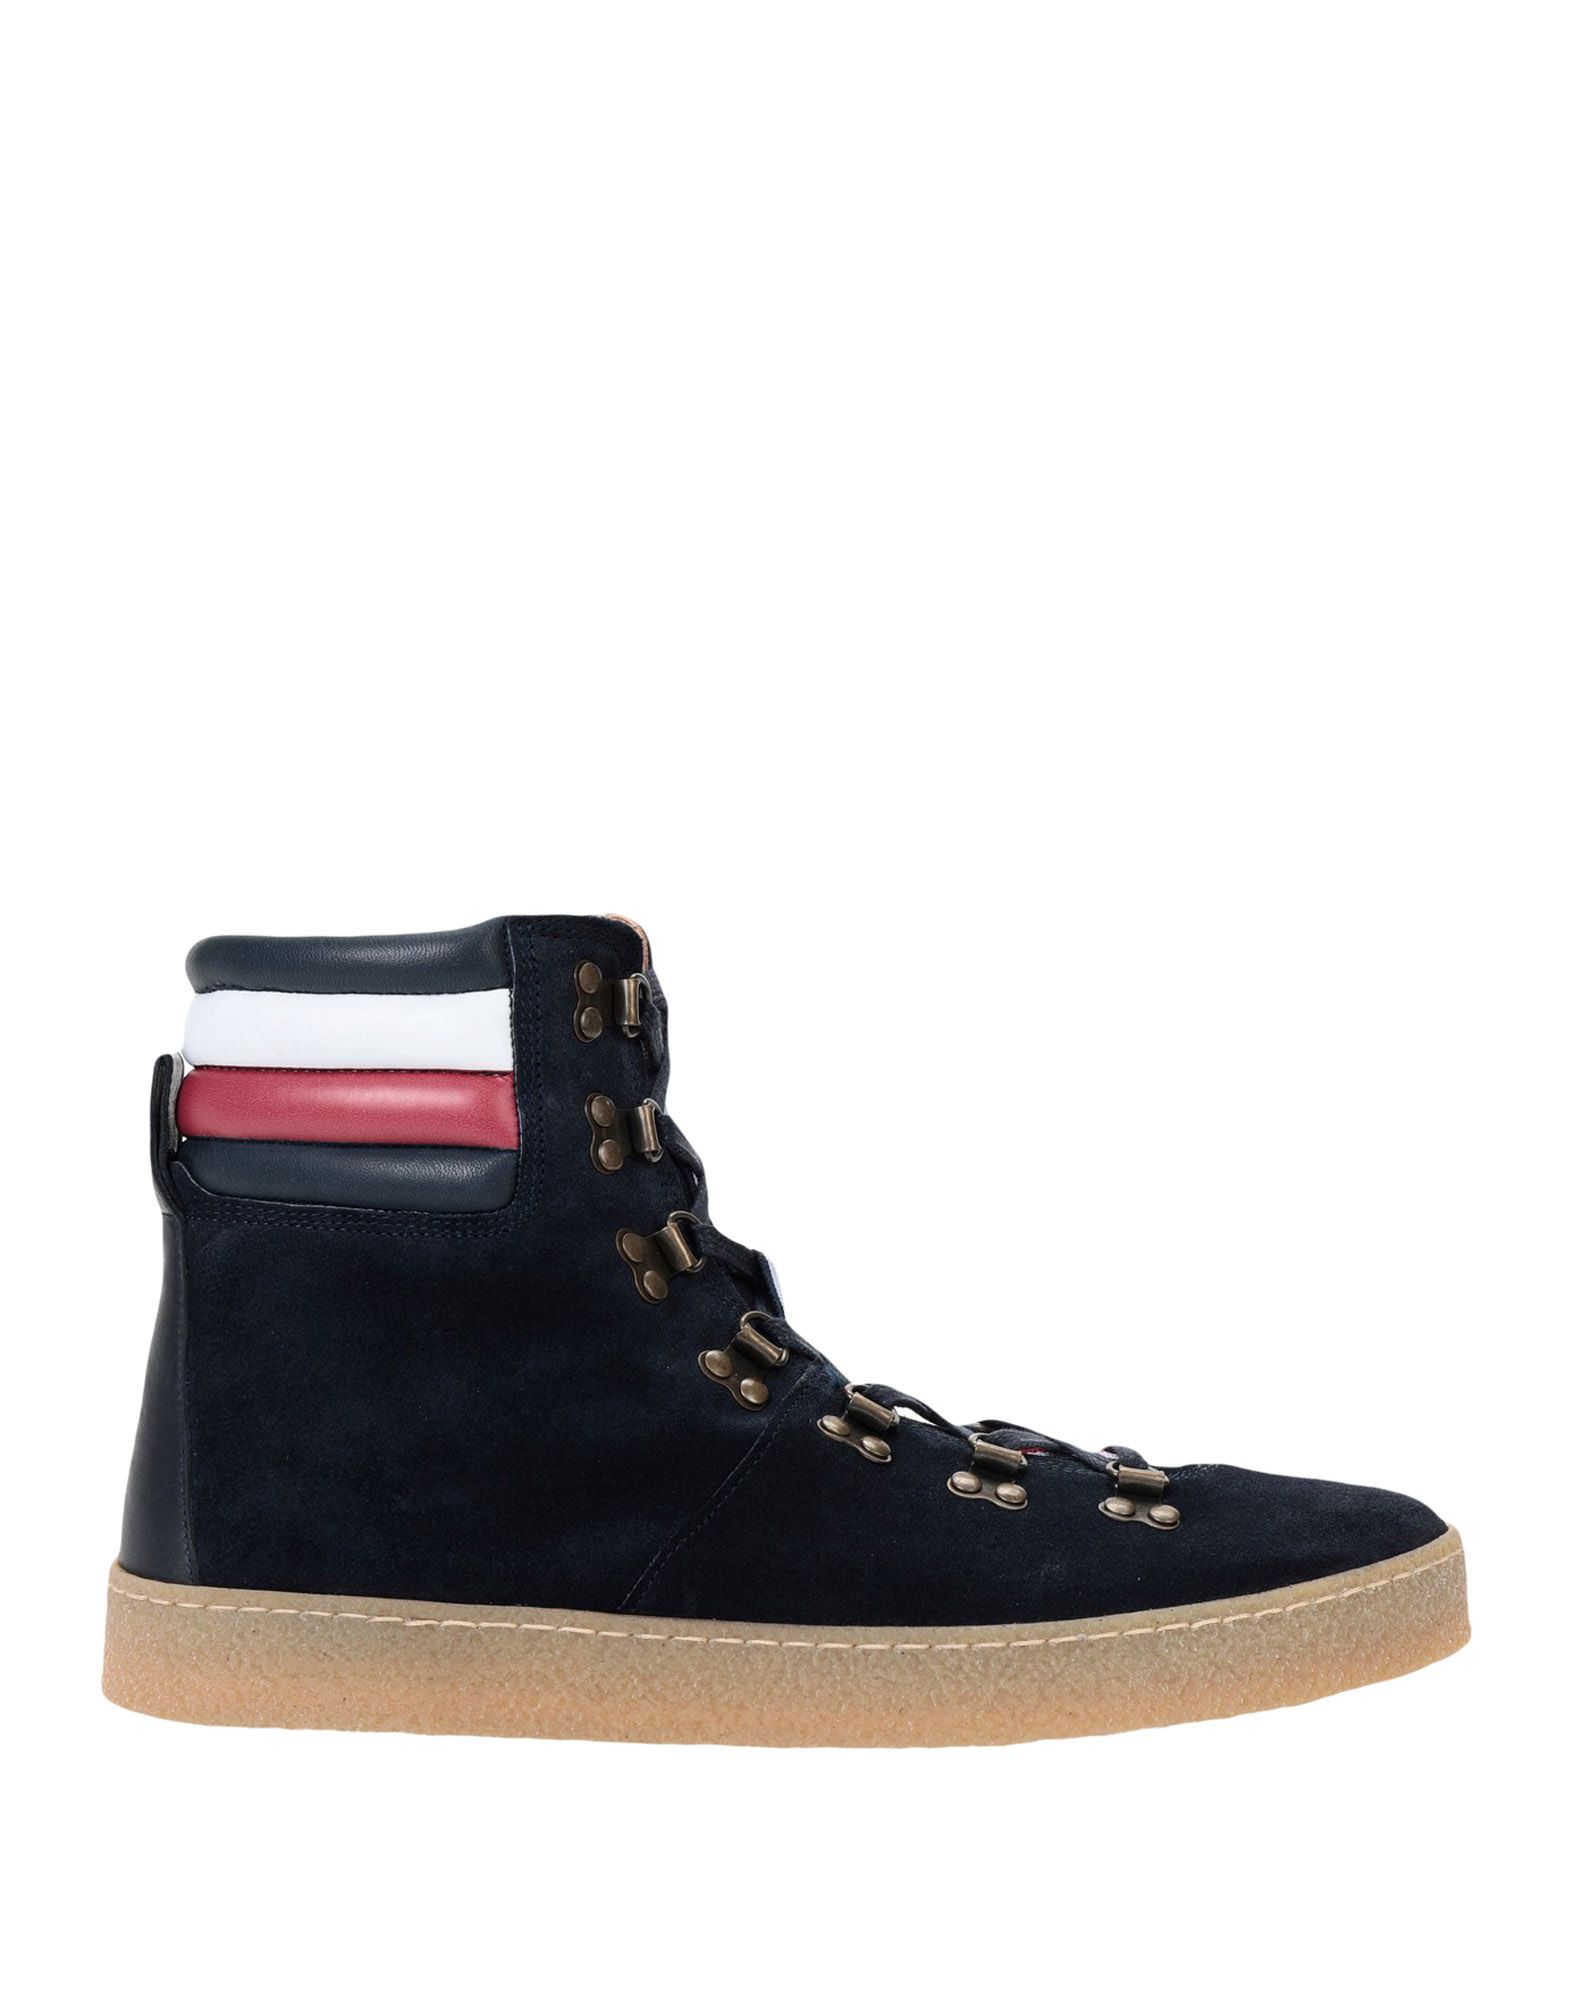 Sneakers Tommy Hilfiger Crepe Out. Hiking Hybrid Boot - Uomo - 11539215HD